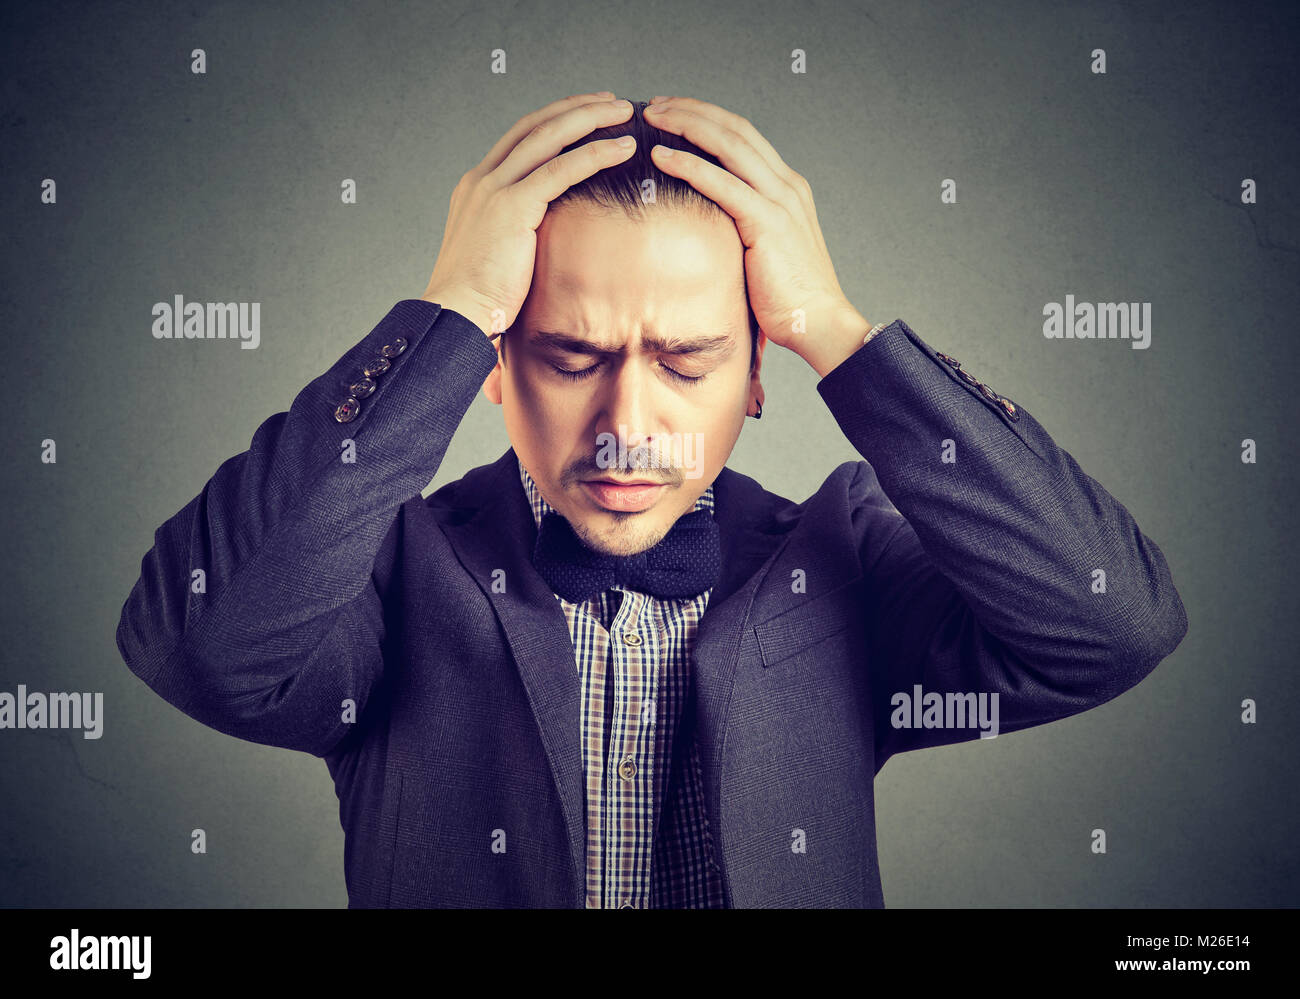 Young businessman in suit holding hands on head looking desperate. - Stock Image